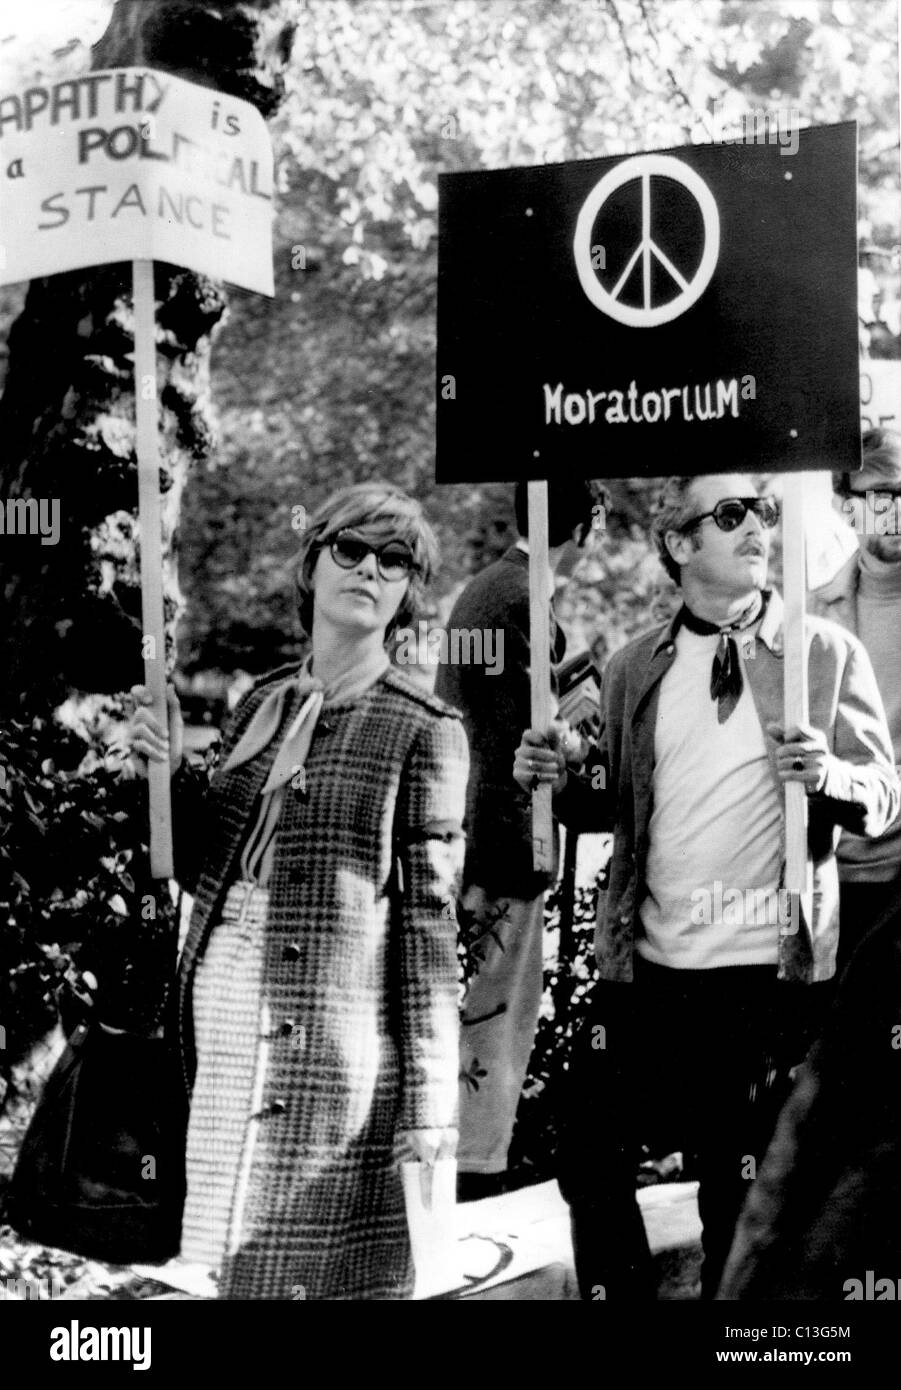 JOANNE WOODWARD and PAUL NEWMAN protest the Vietnam war, 1969 Stock Photo